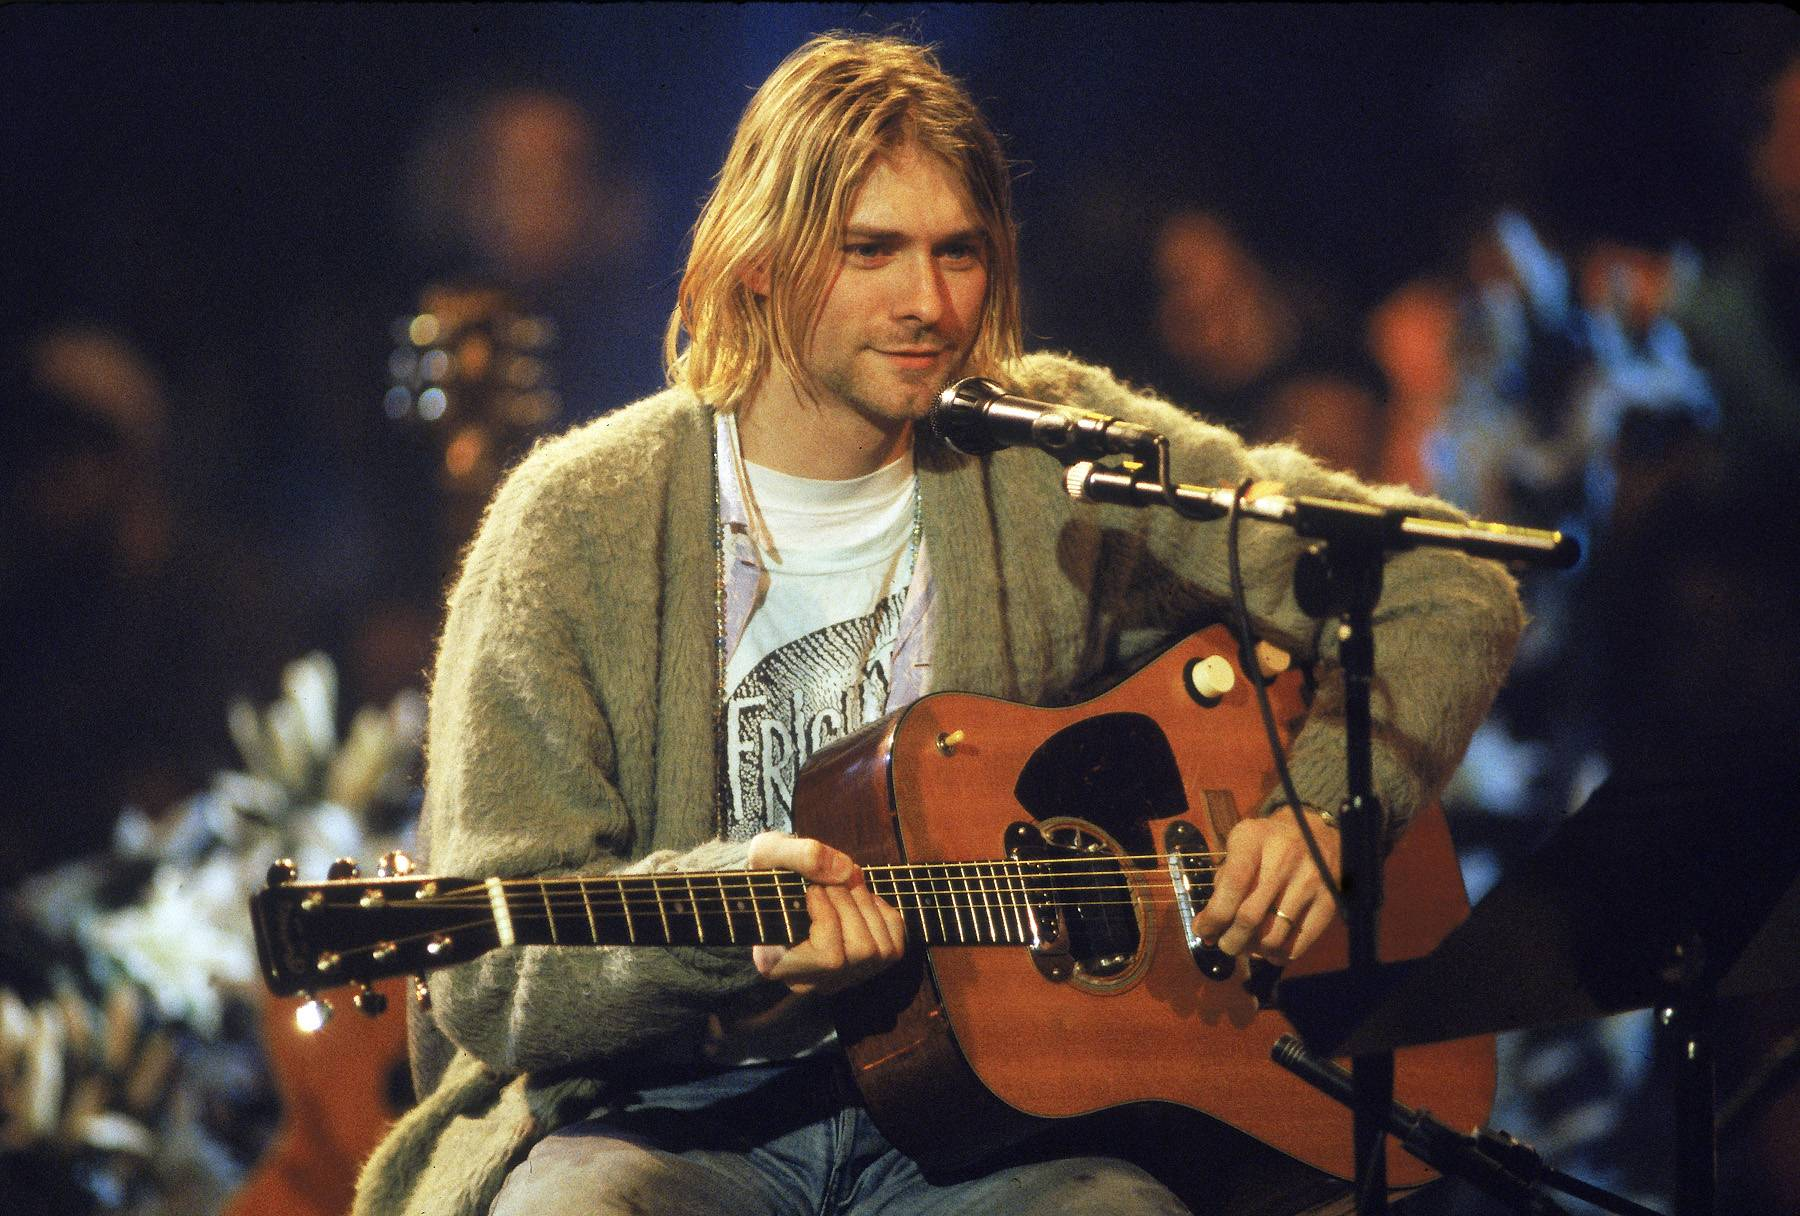 Kurt Cobain - The body of Nirvana frontman Kurt Cobain, who shot himself in the head after struggling with drug abuse and depression, was found on April 8, 1994.  (Photo: Frank Micelotta/Getty Images)